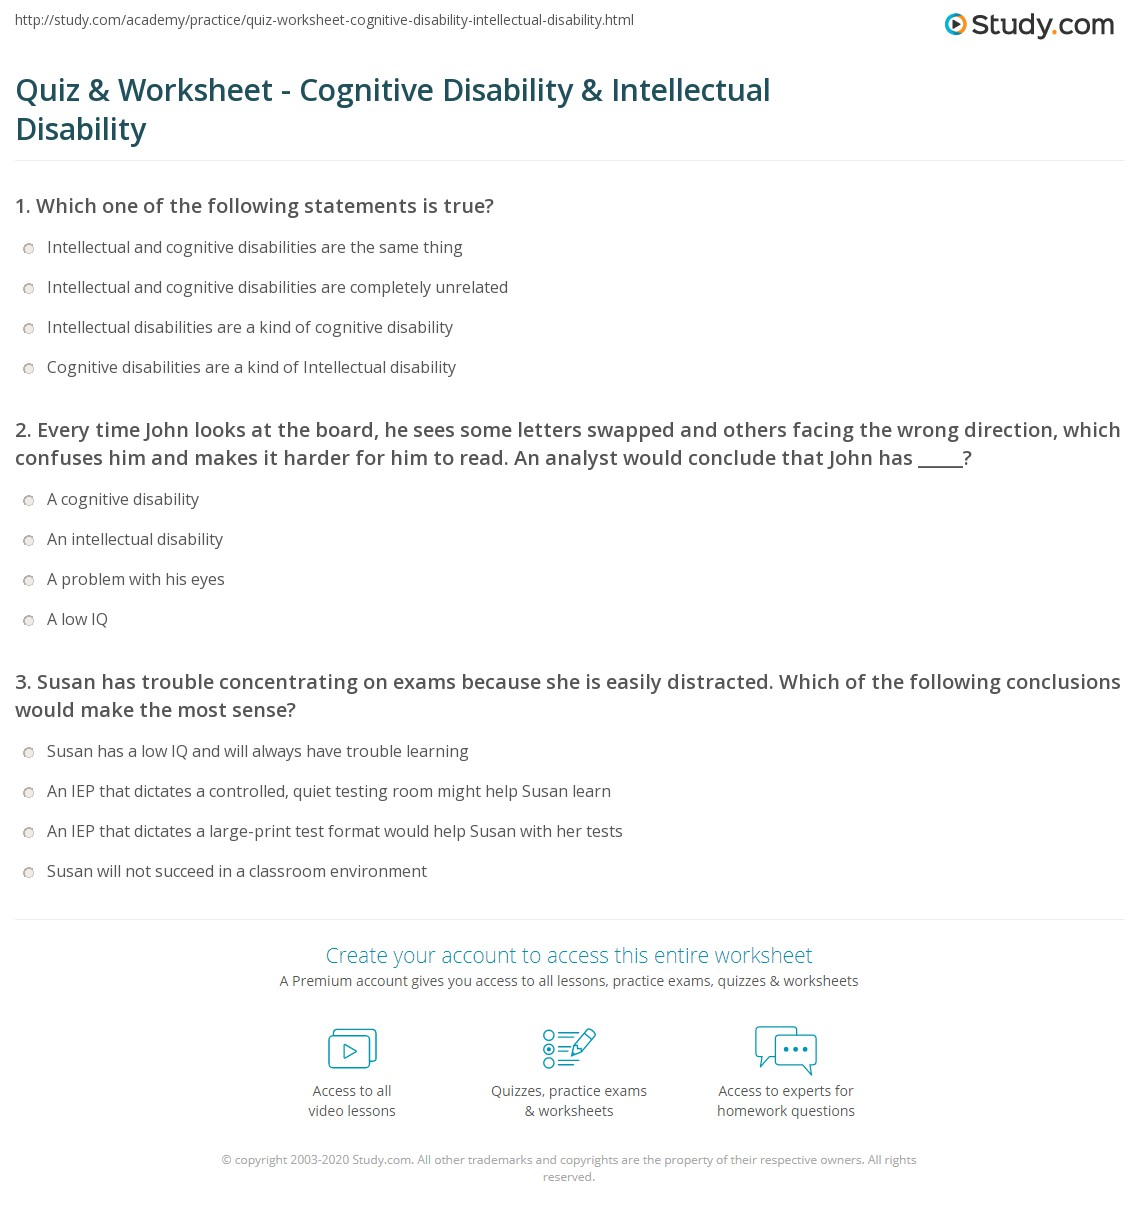 Quiz Worksheet Cognitive Disability Intellectual Disability